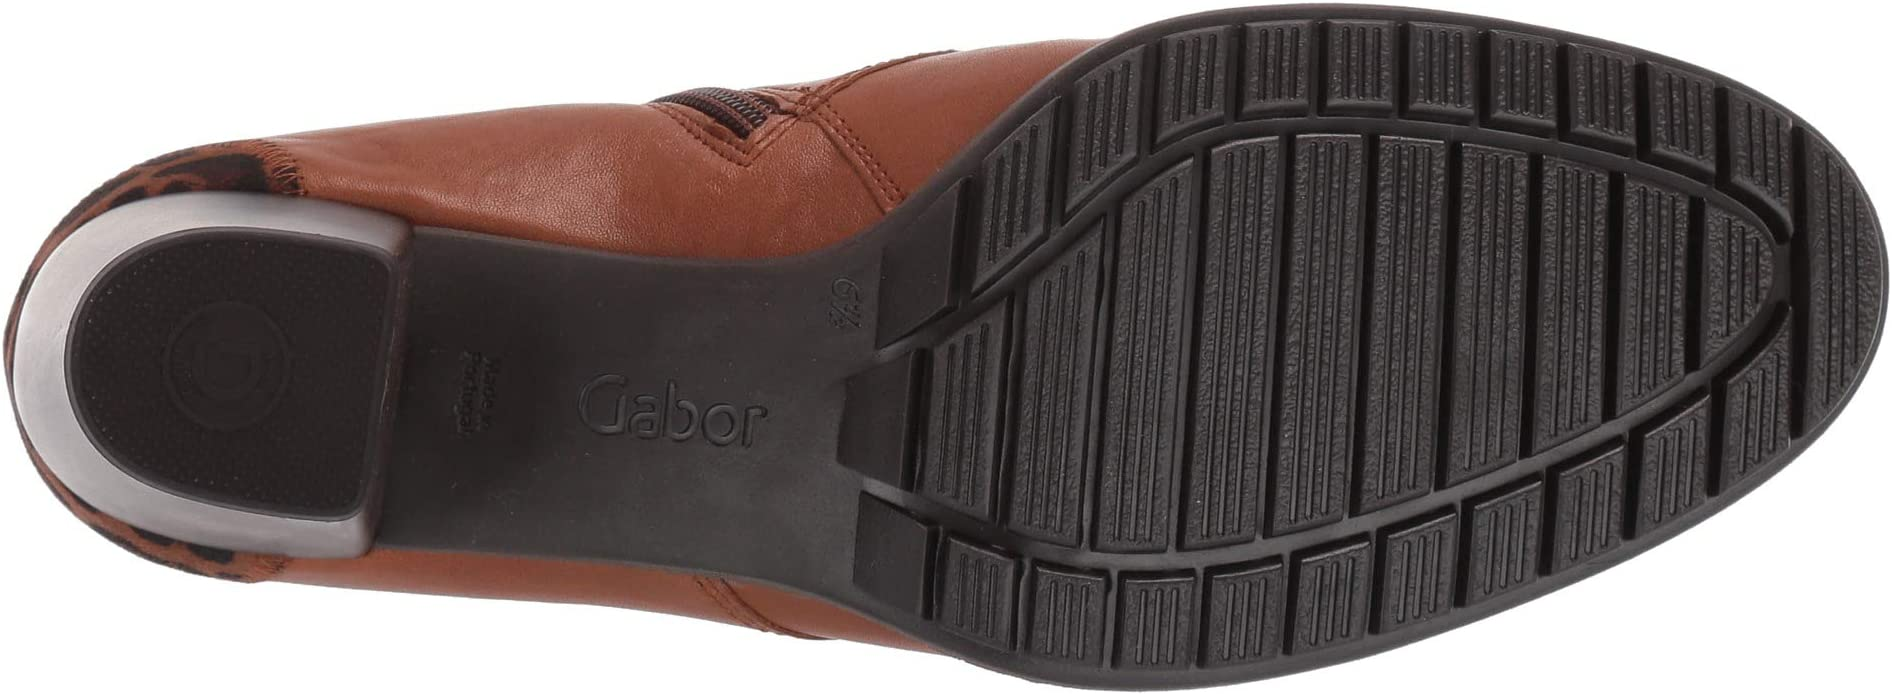 Gabor Gabor 36.605 | Women's shoes | 2020 Newest